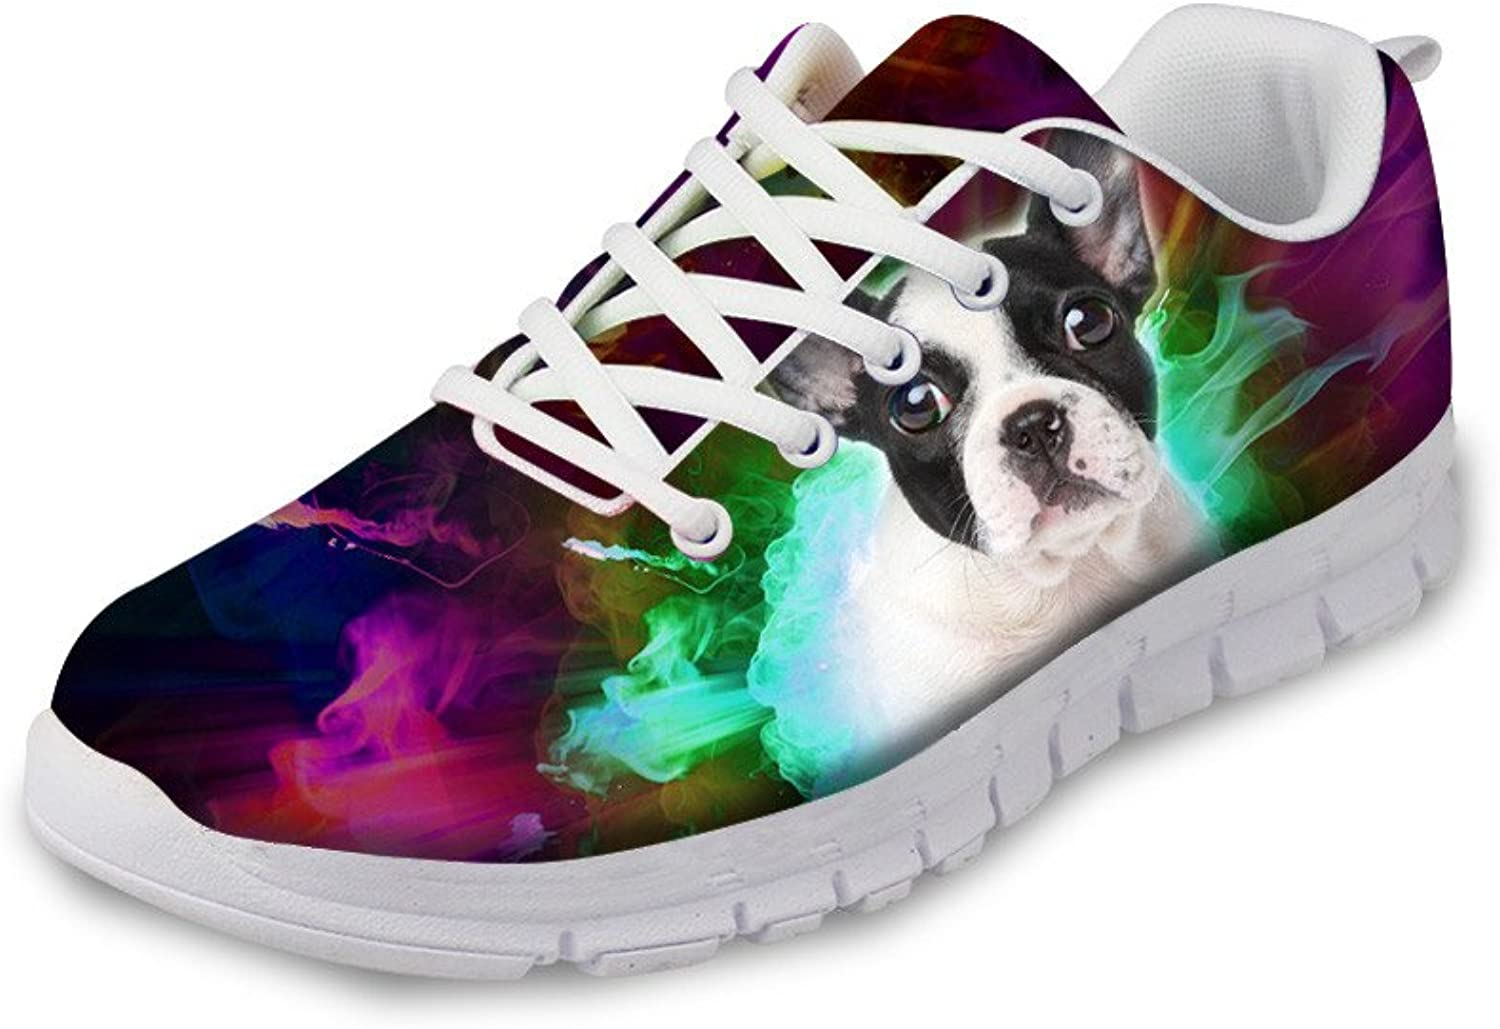 Chaqlin Fashion Animal Print Runnning shoes Breathable Men & Women Breathable Mesh Sneakers